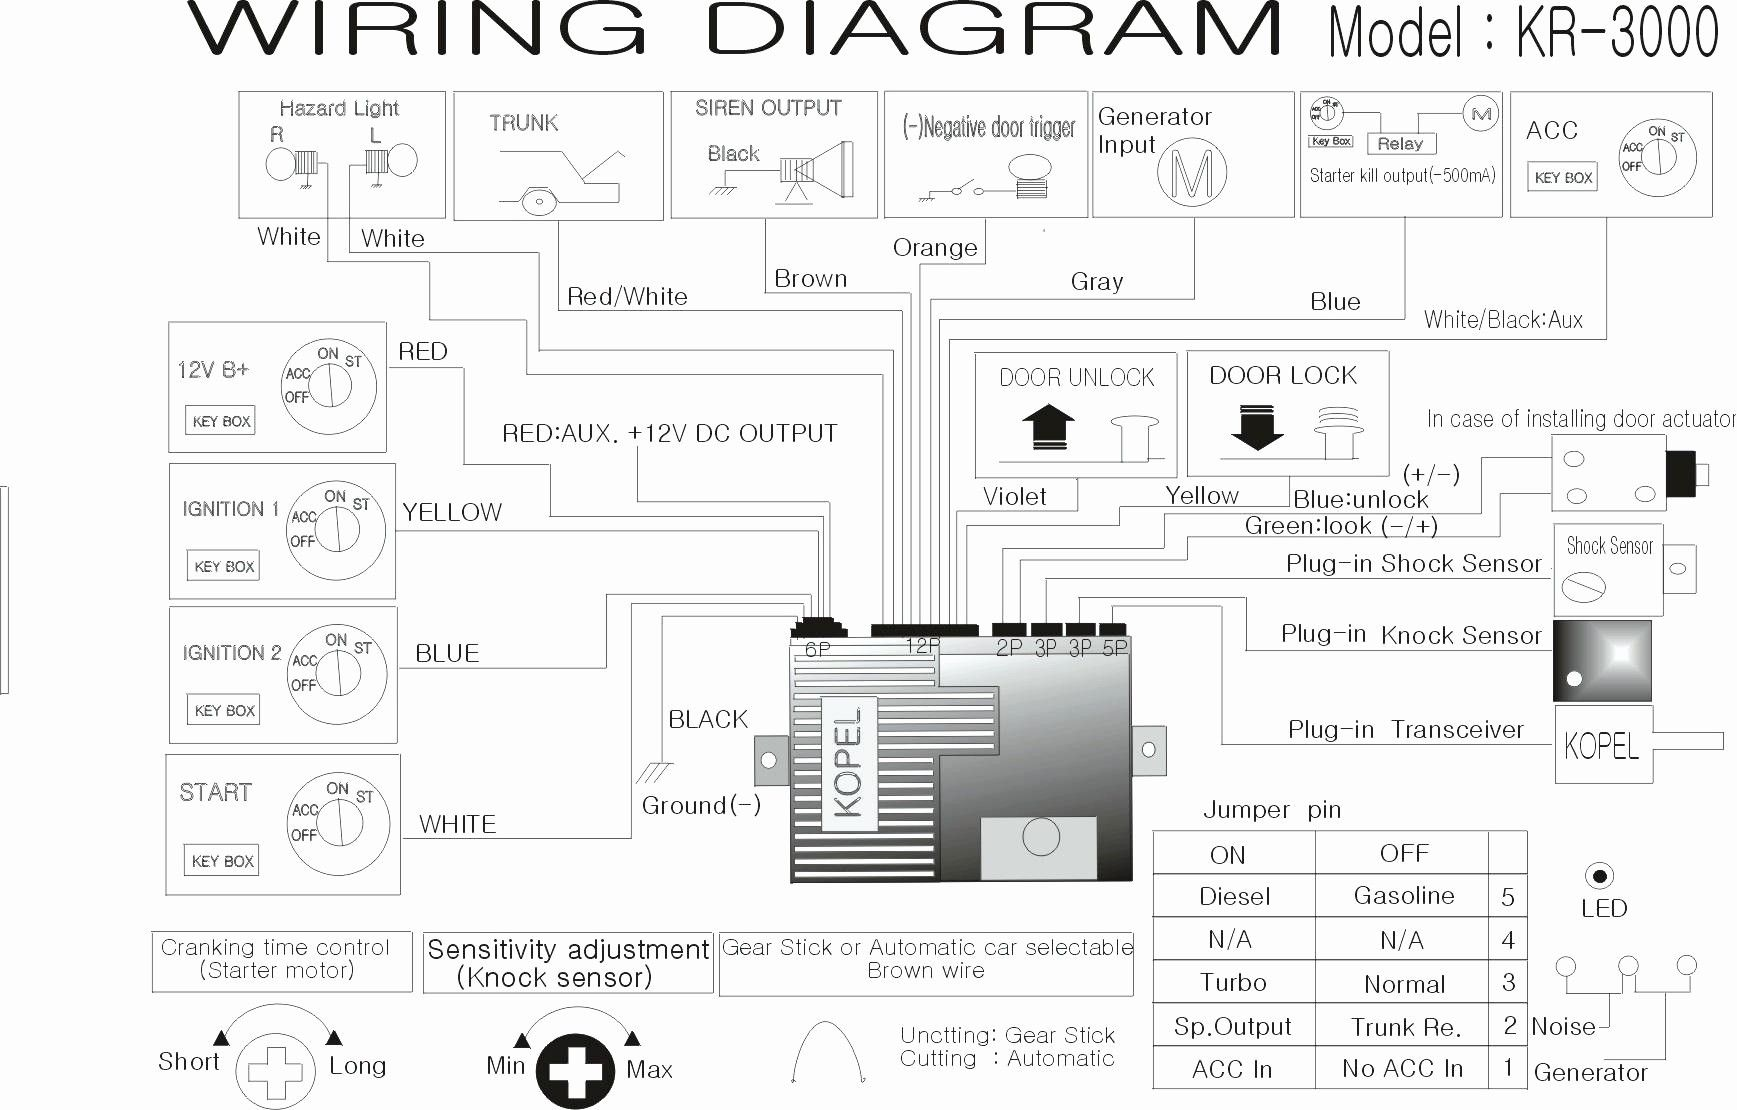 Unique Wiring Diagram Esp Guitar Diagram Diagramsample Diagramtemplate Wiringdiagram Diagramchart Worksheet Worksheettemplate Diagram Wire Hazard Lights